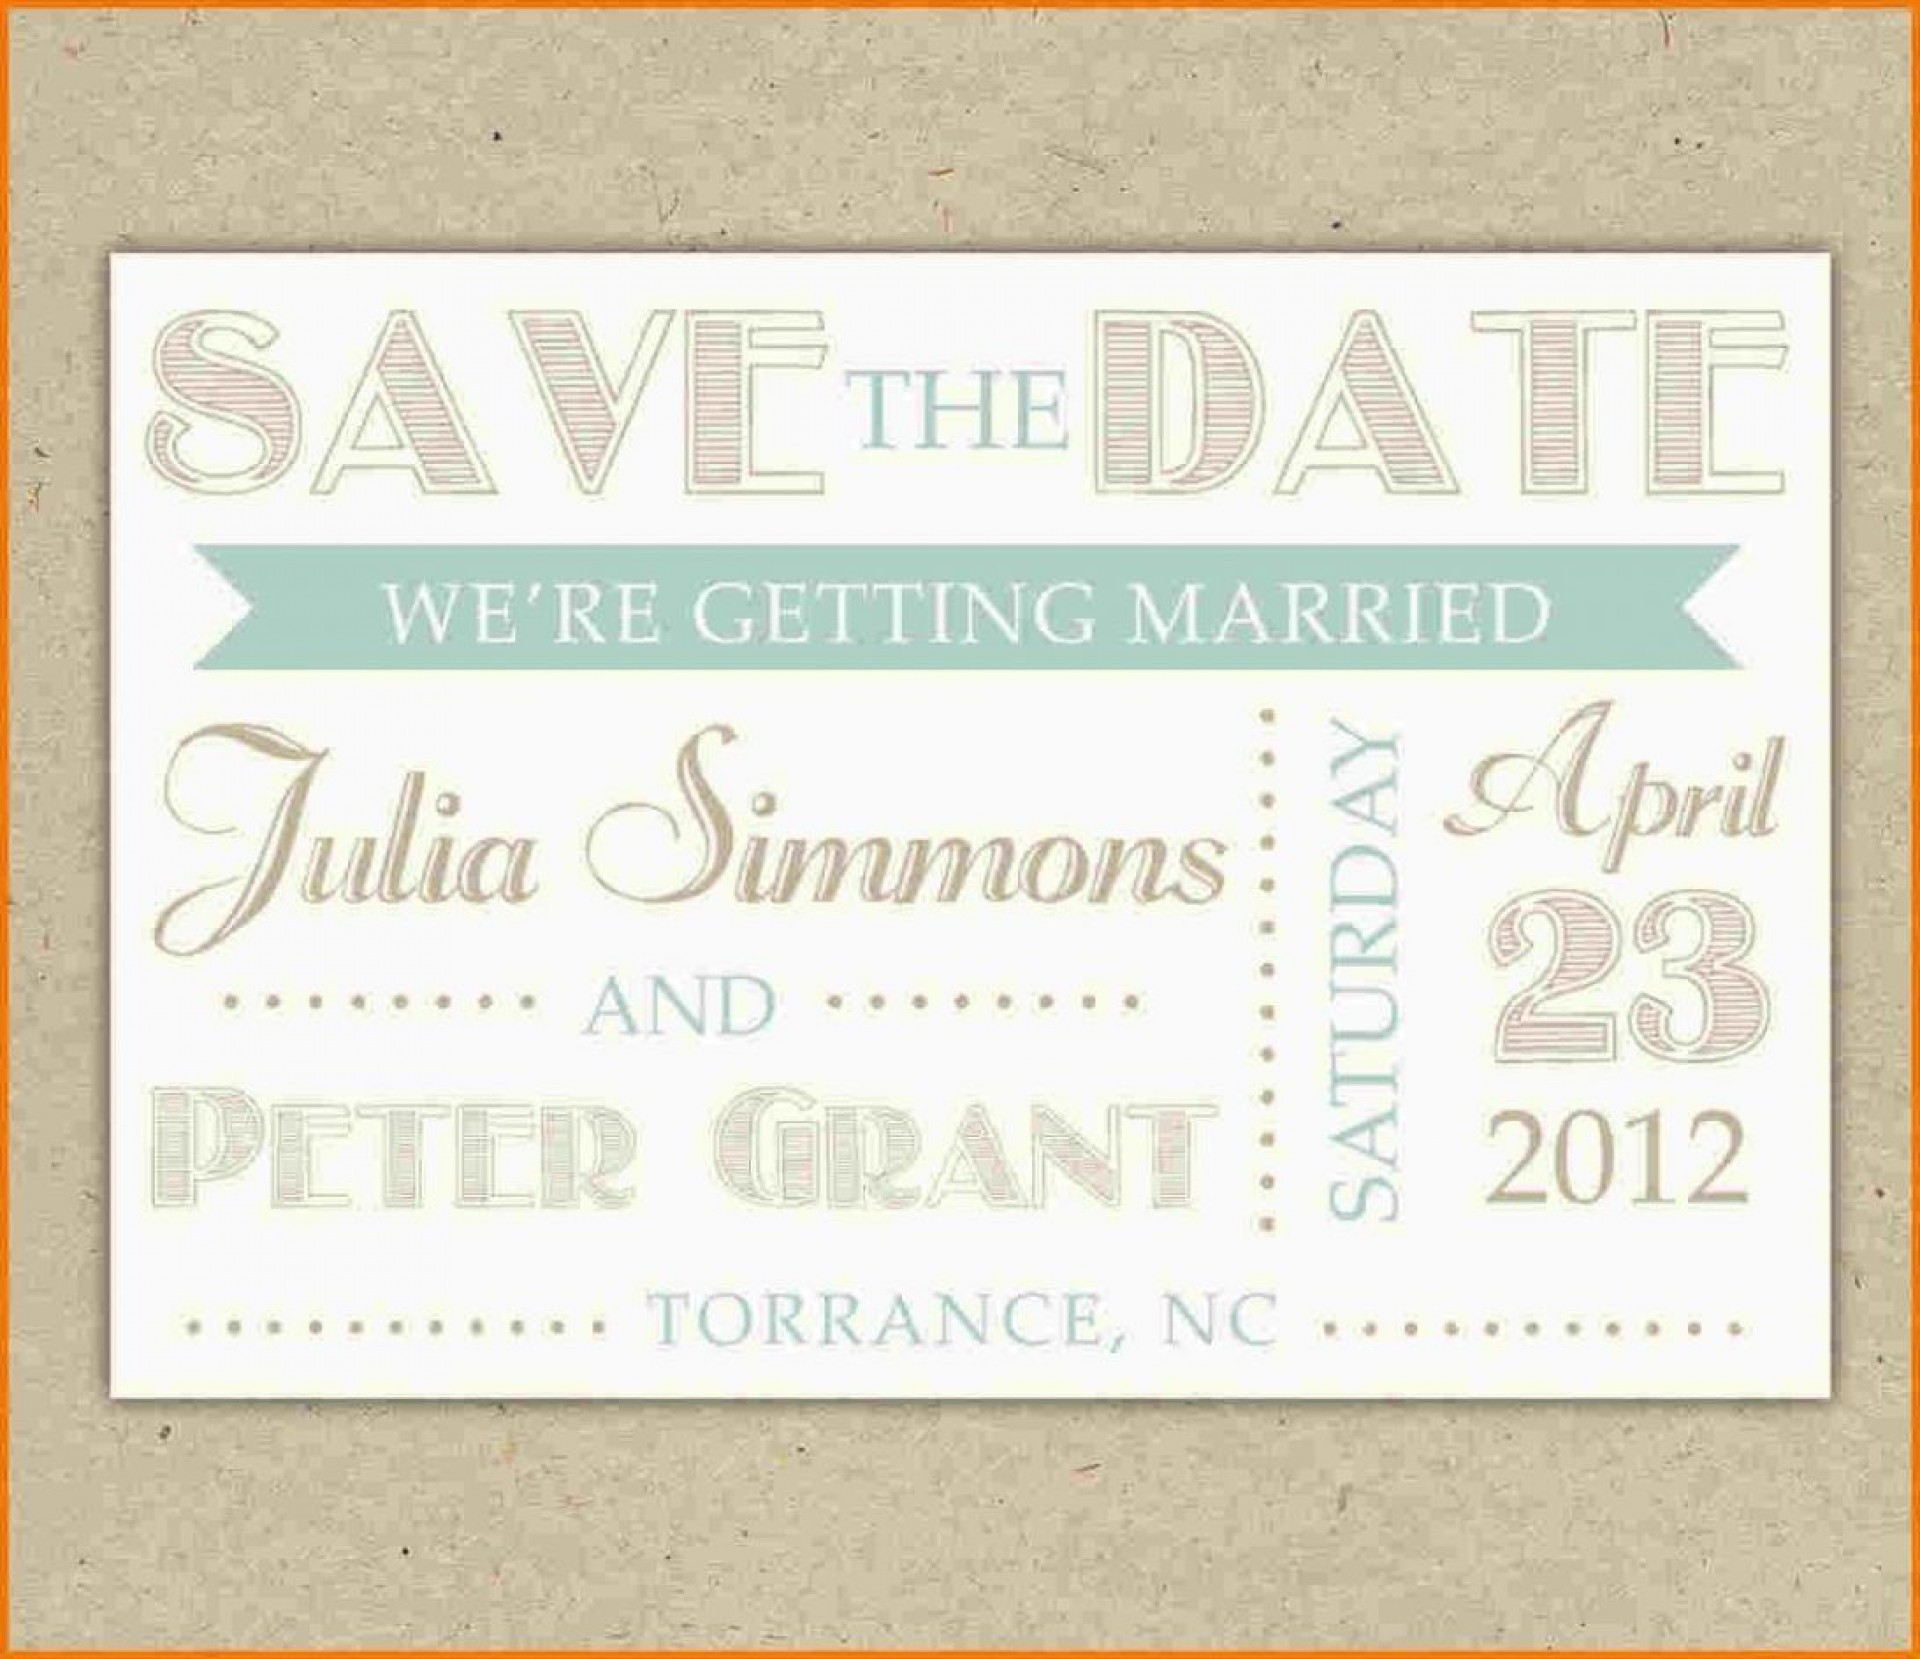 002 Wondrou Save The Date Template Word Inspiration  Free Customizable For Holiday Party1920